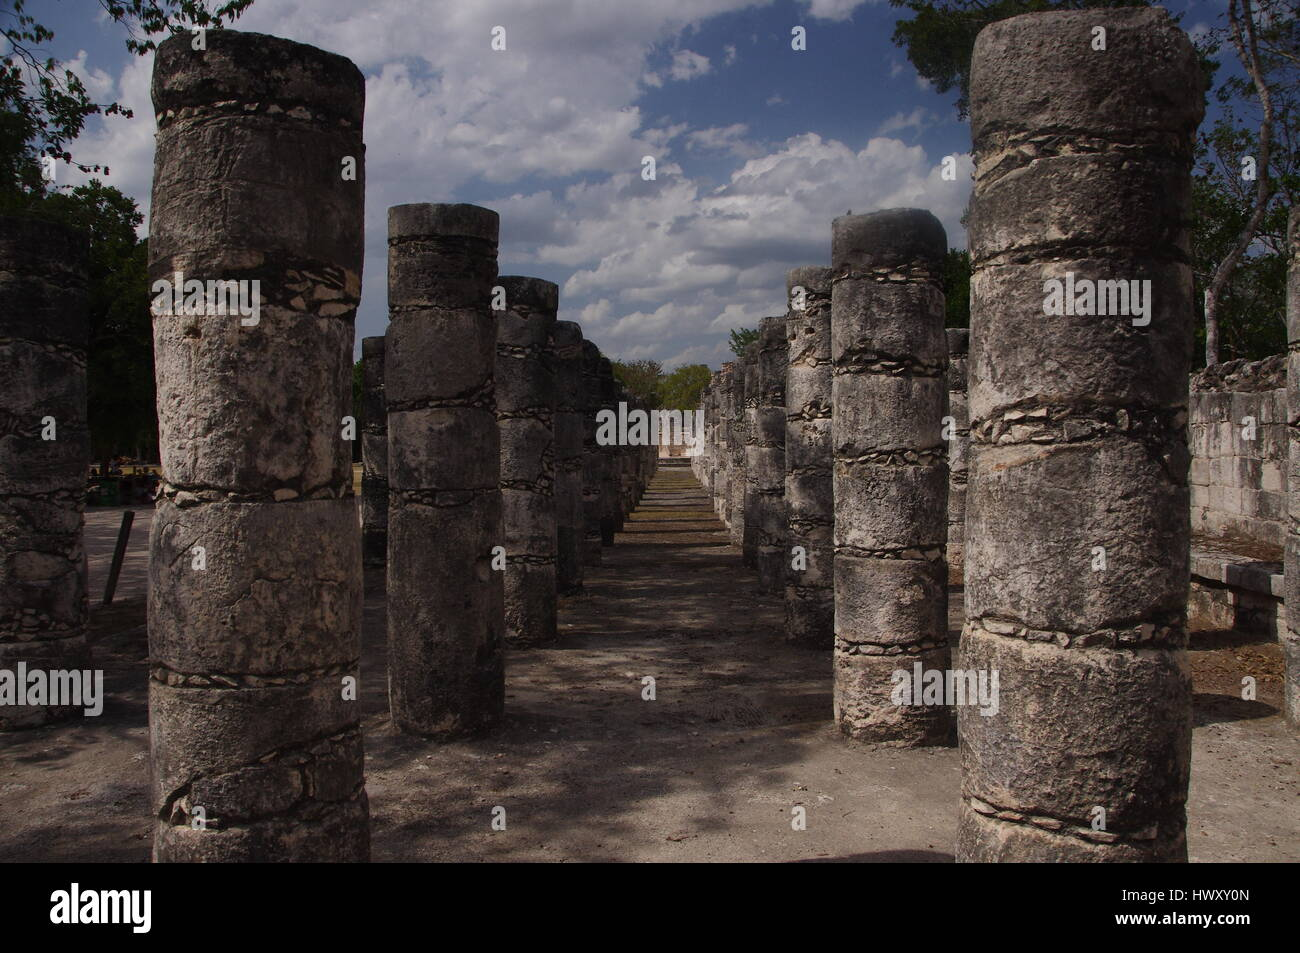 Temple of Thousands Warriors, Chichen Itza, Yucatan, Mexico - Stock Image